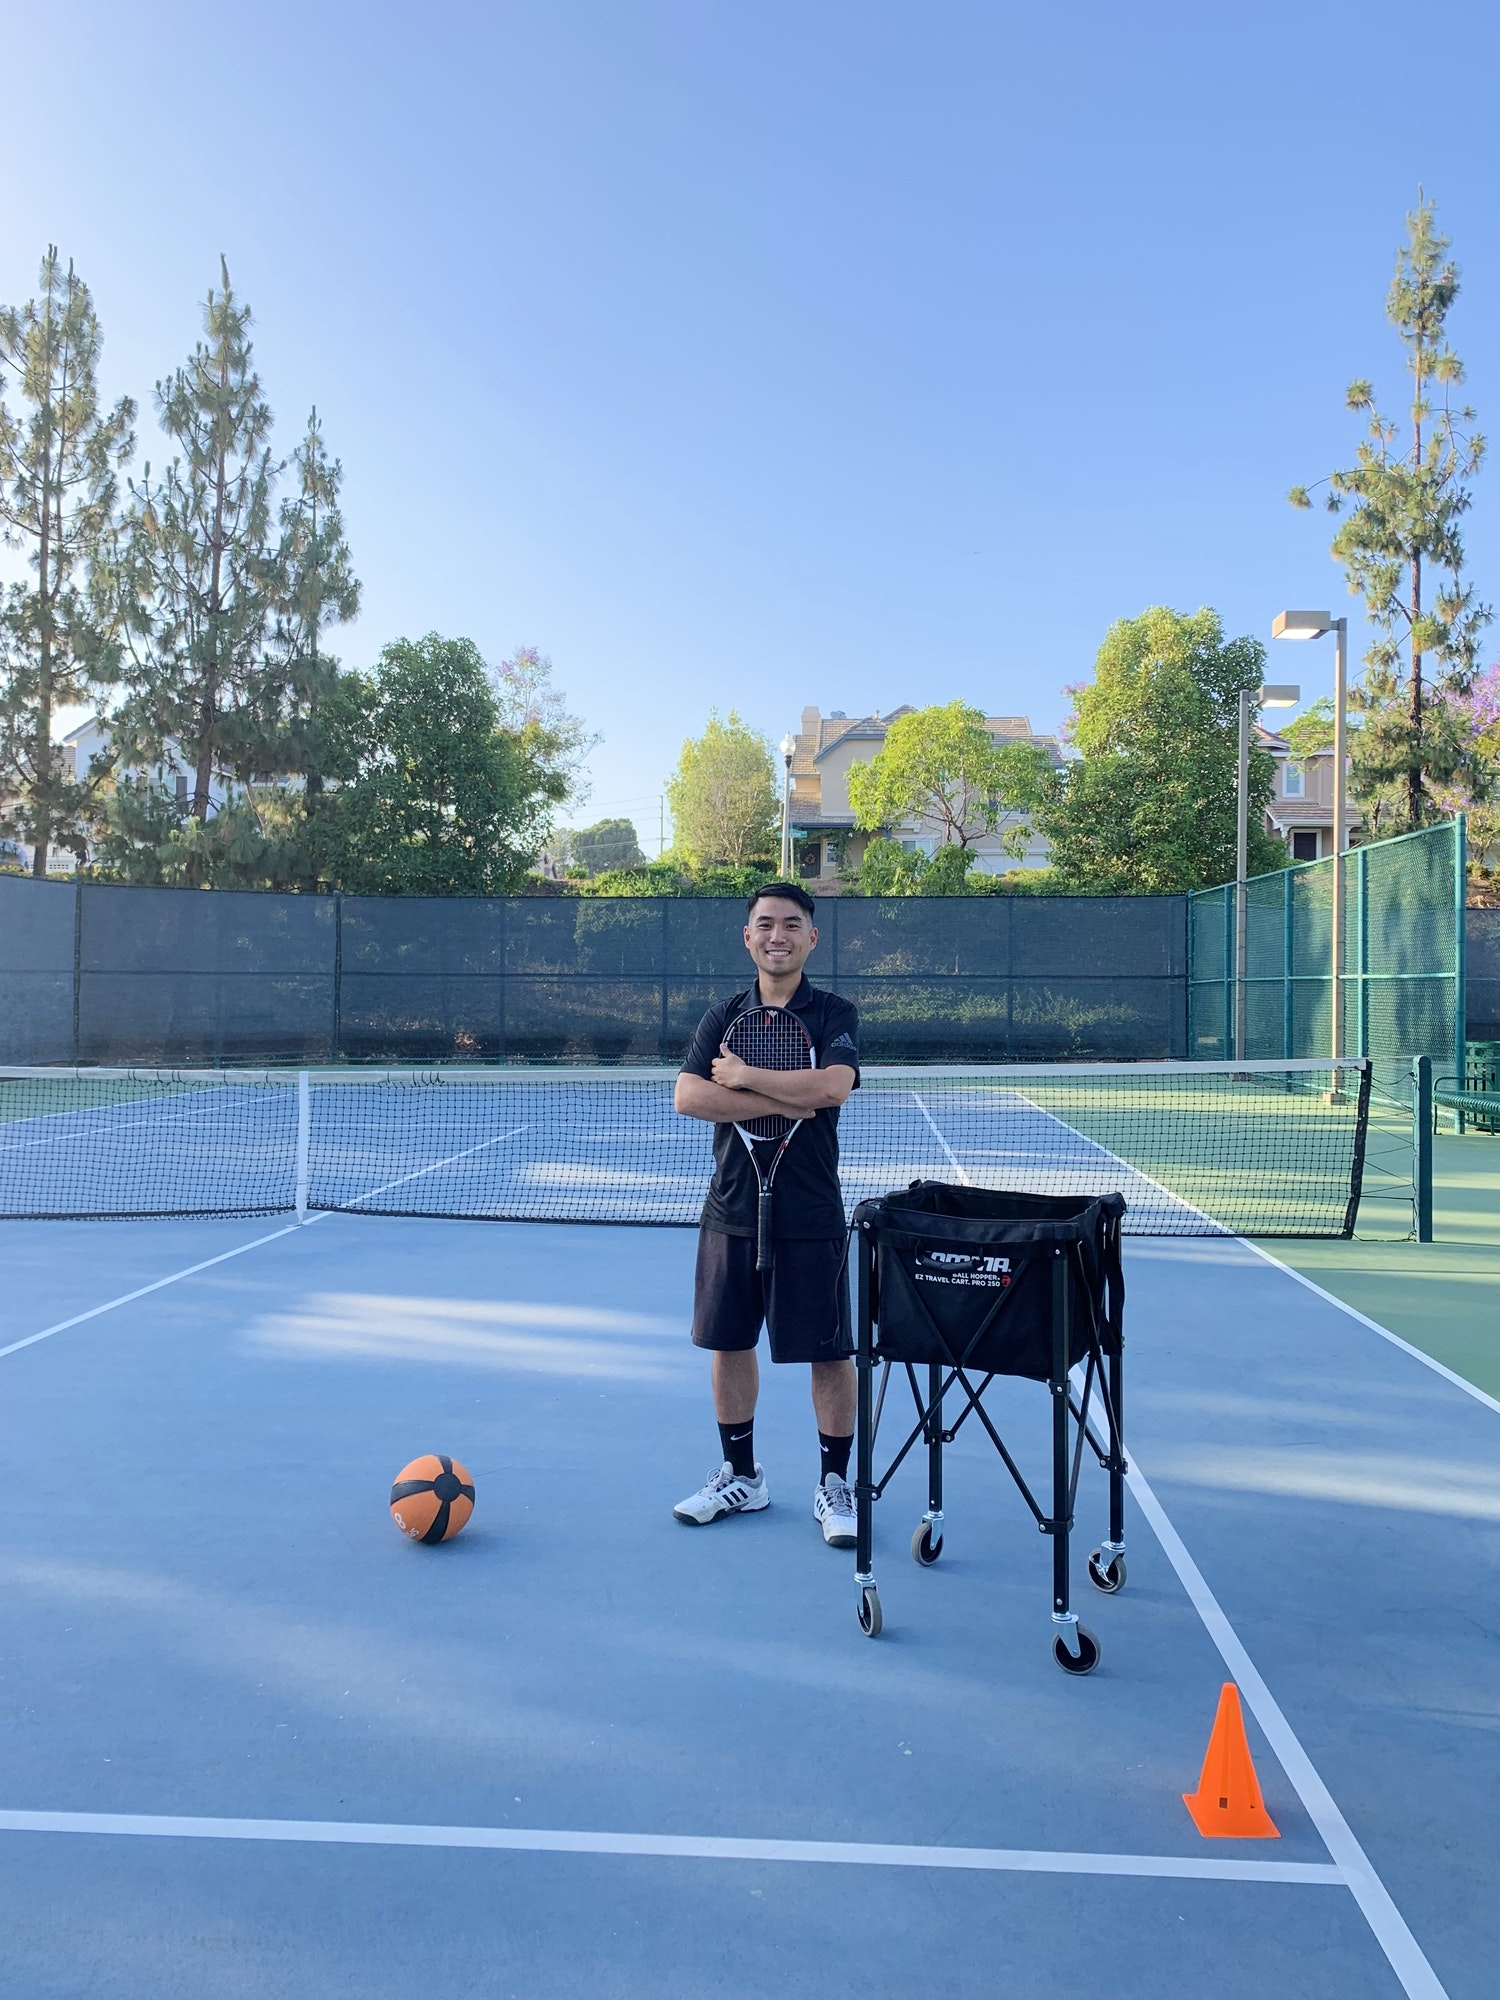 Tony W. teaches tennis lessons in Brea, CA